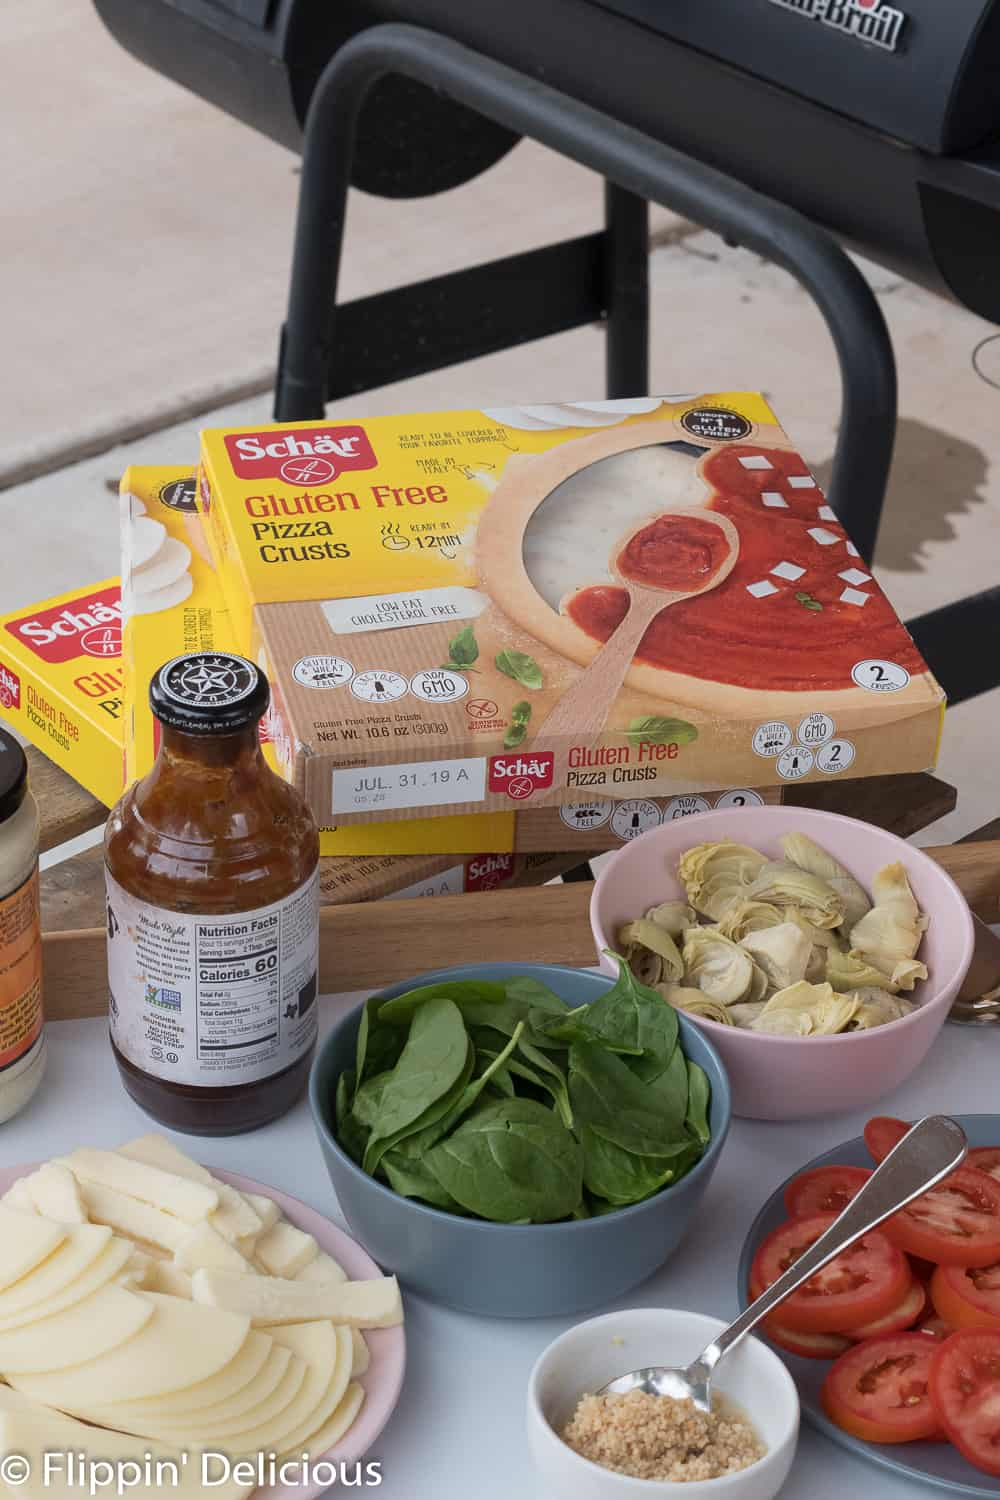 schar gluten free pizza crusts among pizza toppings with a grill in the background